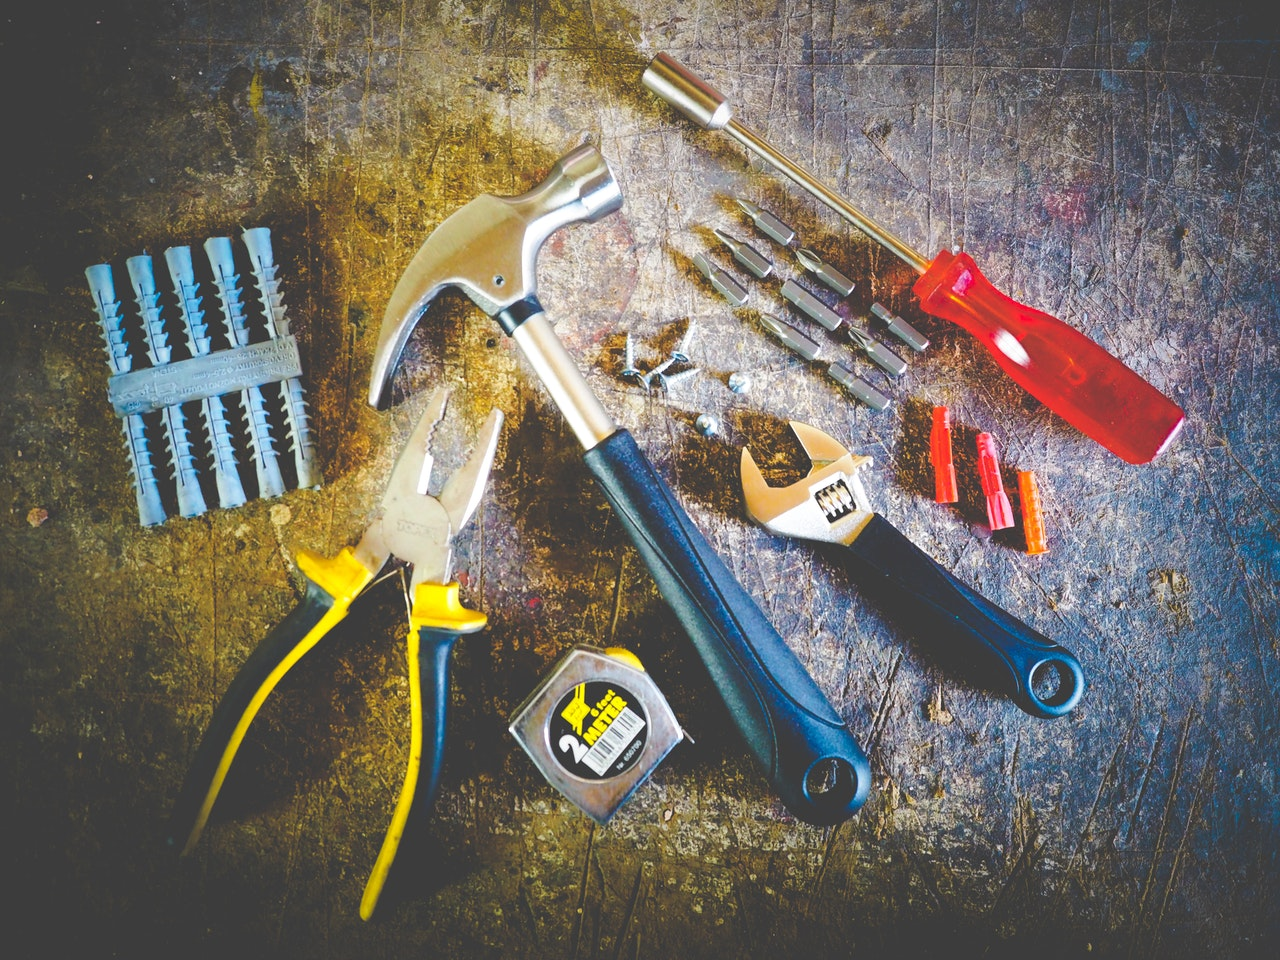 10 Tips on Finding Trusted Tradespeople